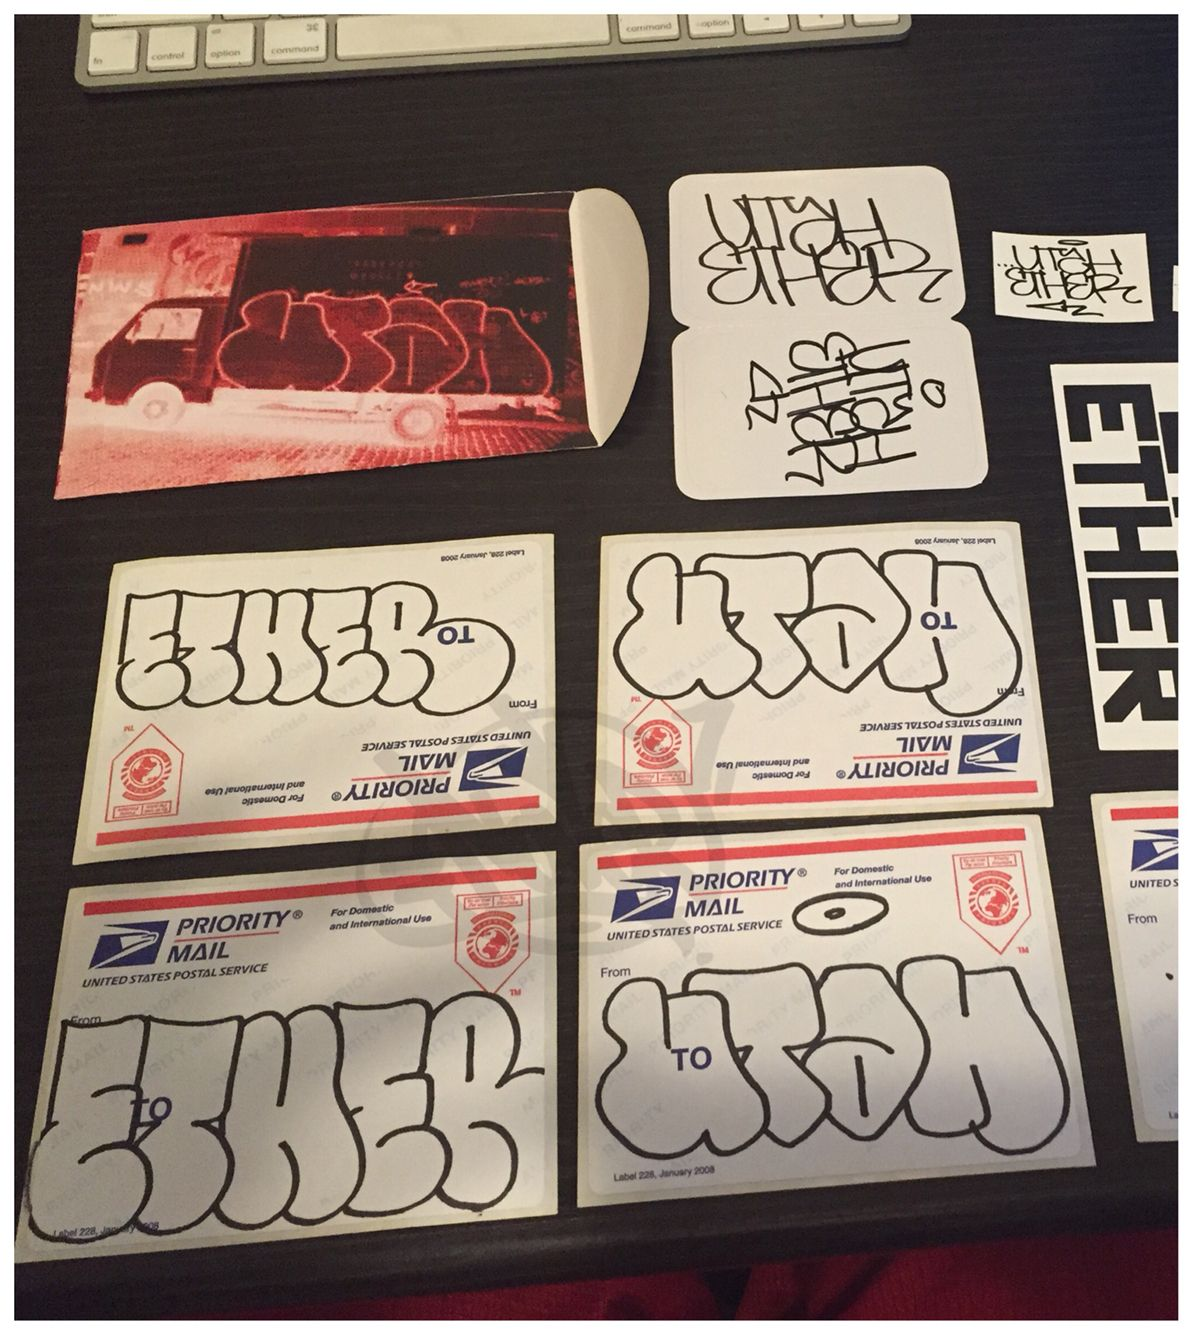 Ether and Utah stickers #228label #handmade #throwie #handstyle #graffiti  #ether